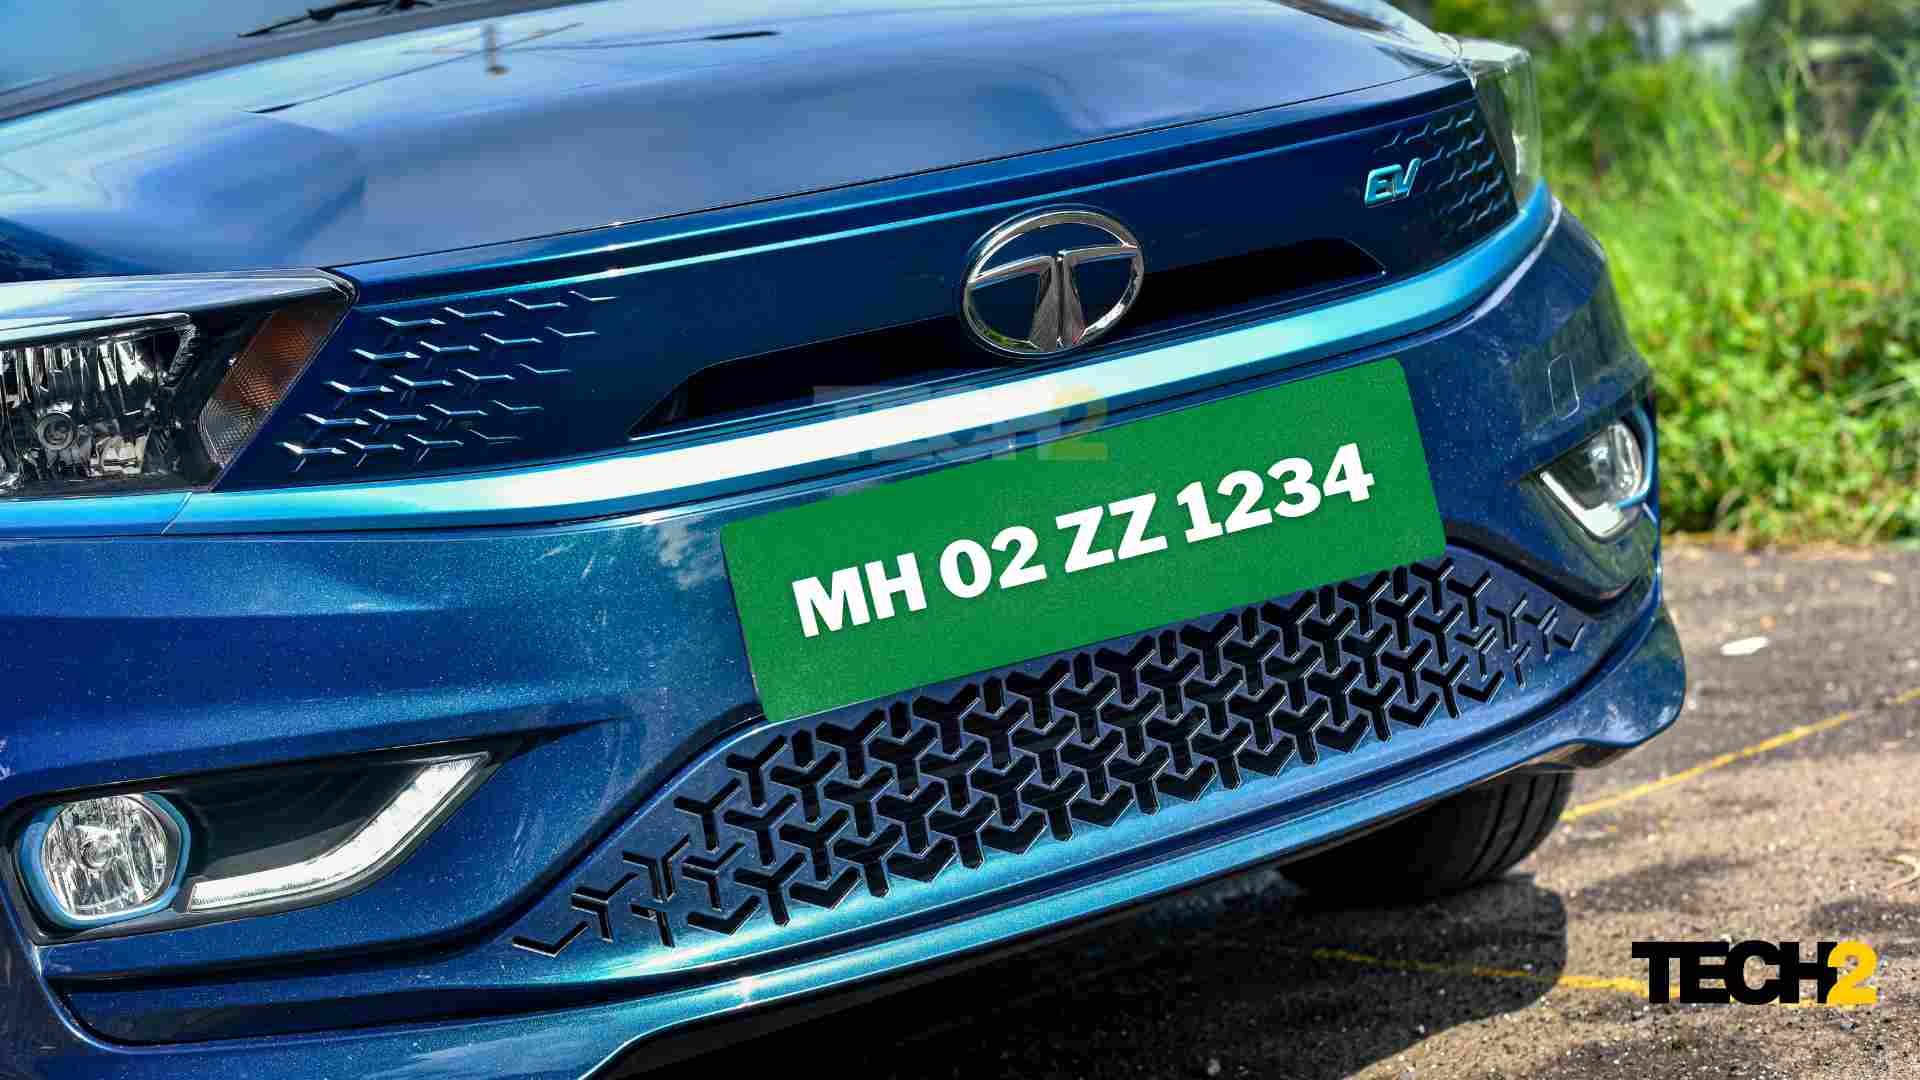 The revised Maharashtra EV policy will help bring prices of Tata Motors' EVs by up to Rs 2.50 lakh. Image: Tech2